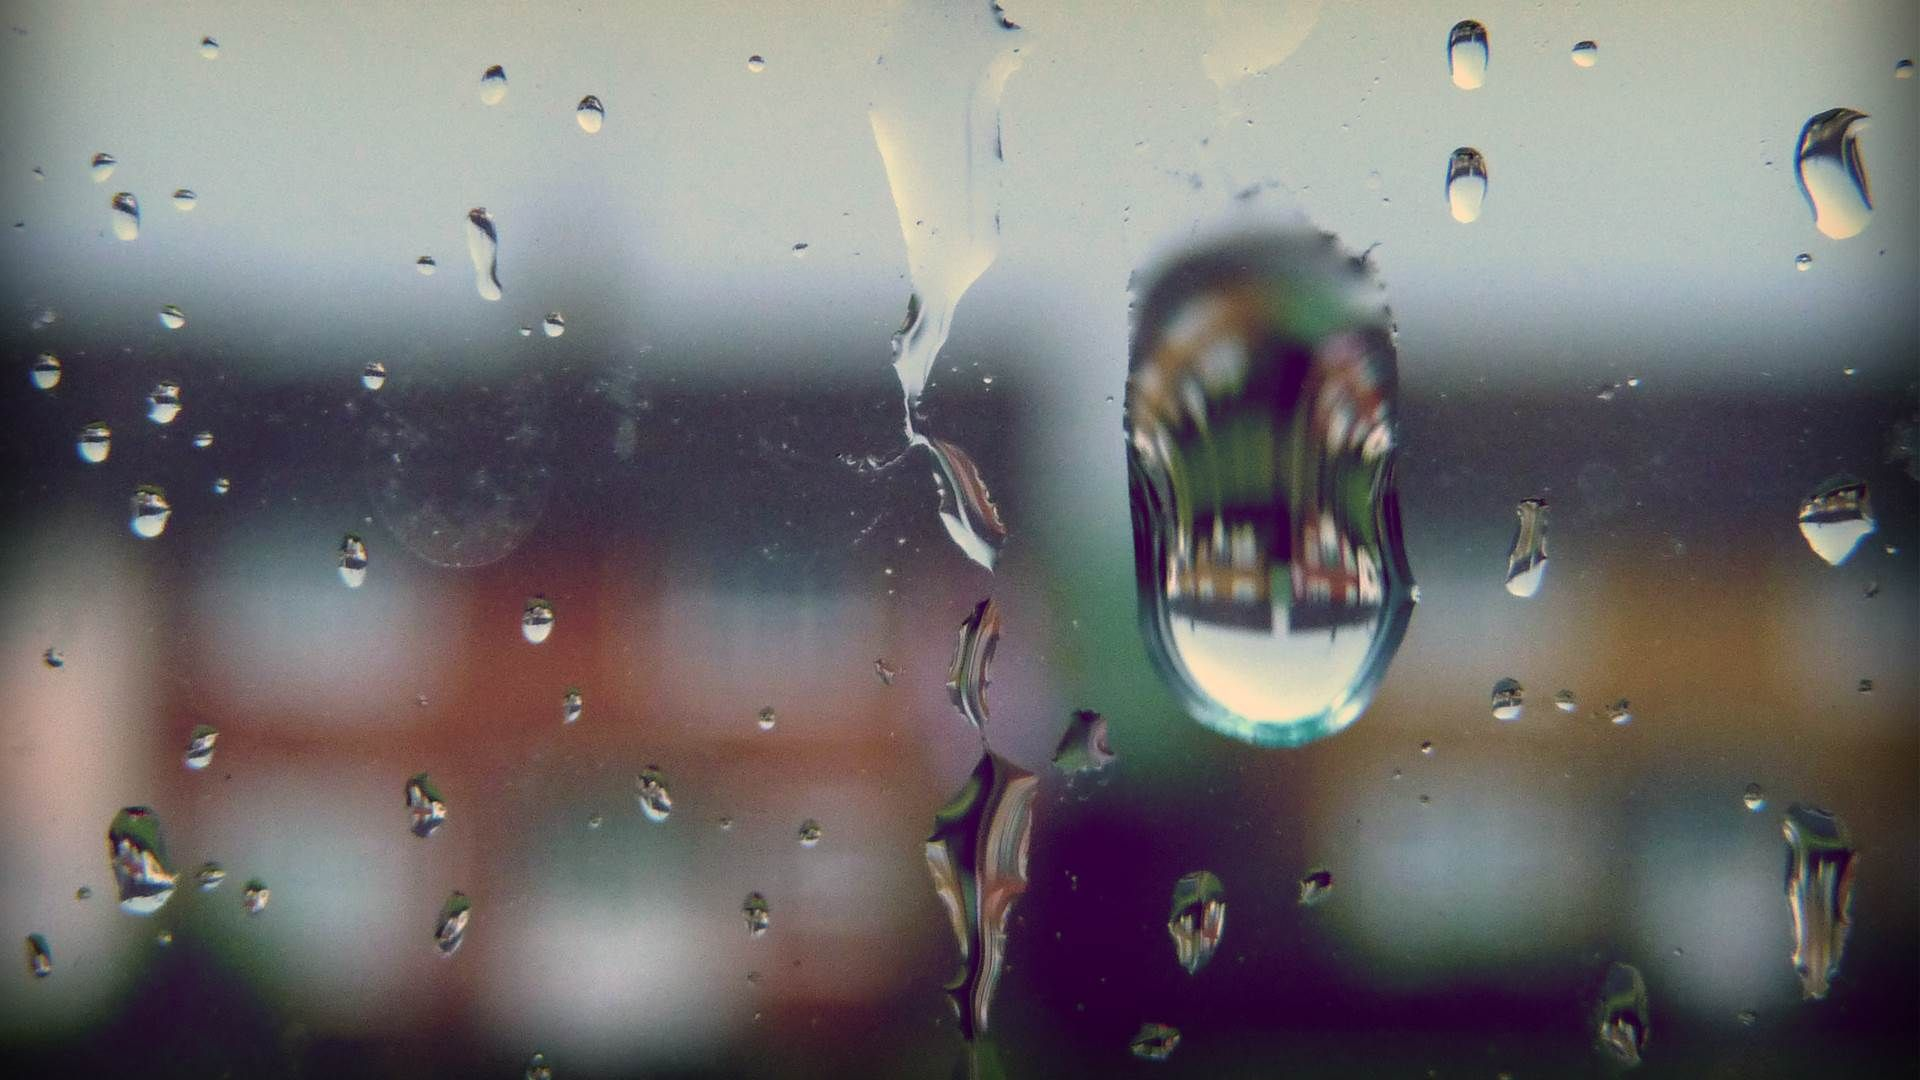 iPhone Raindrop Wallpaper 1920×1080 Raindrop Wallpapers